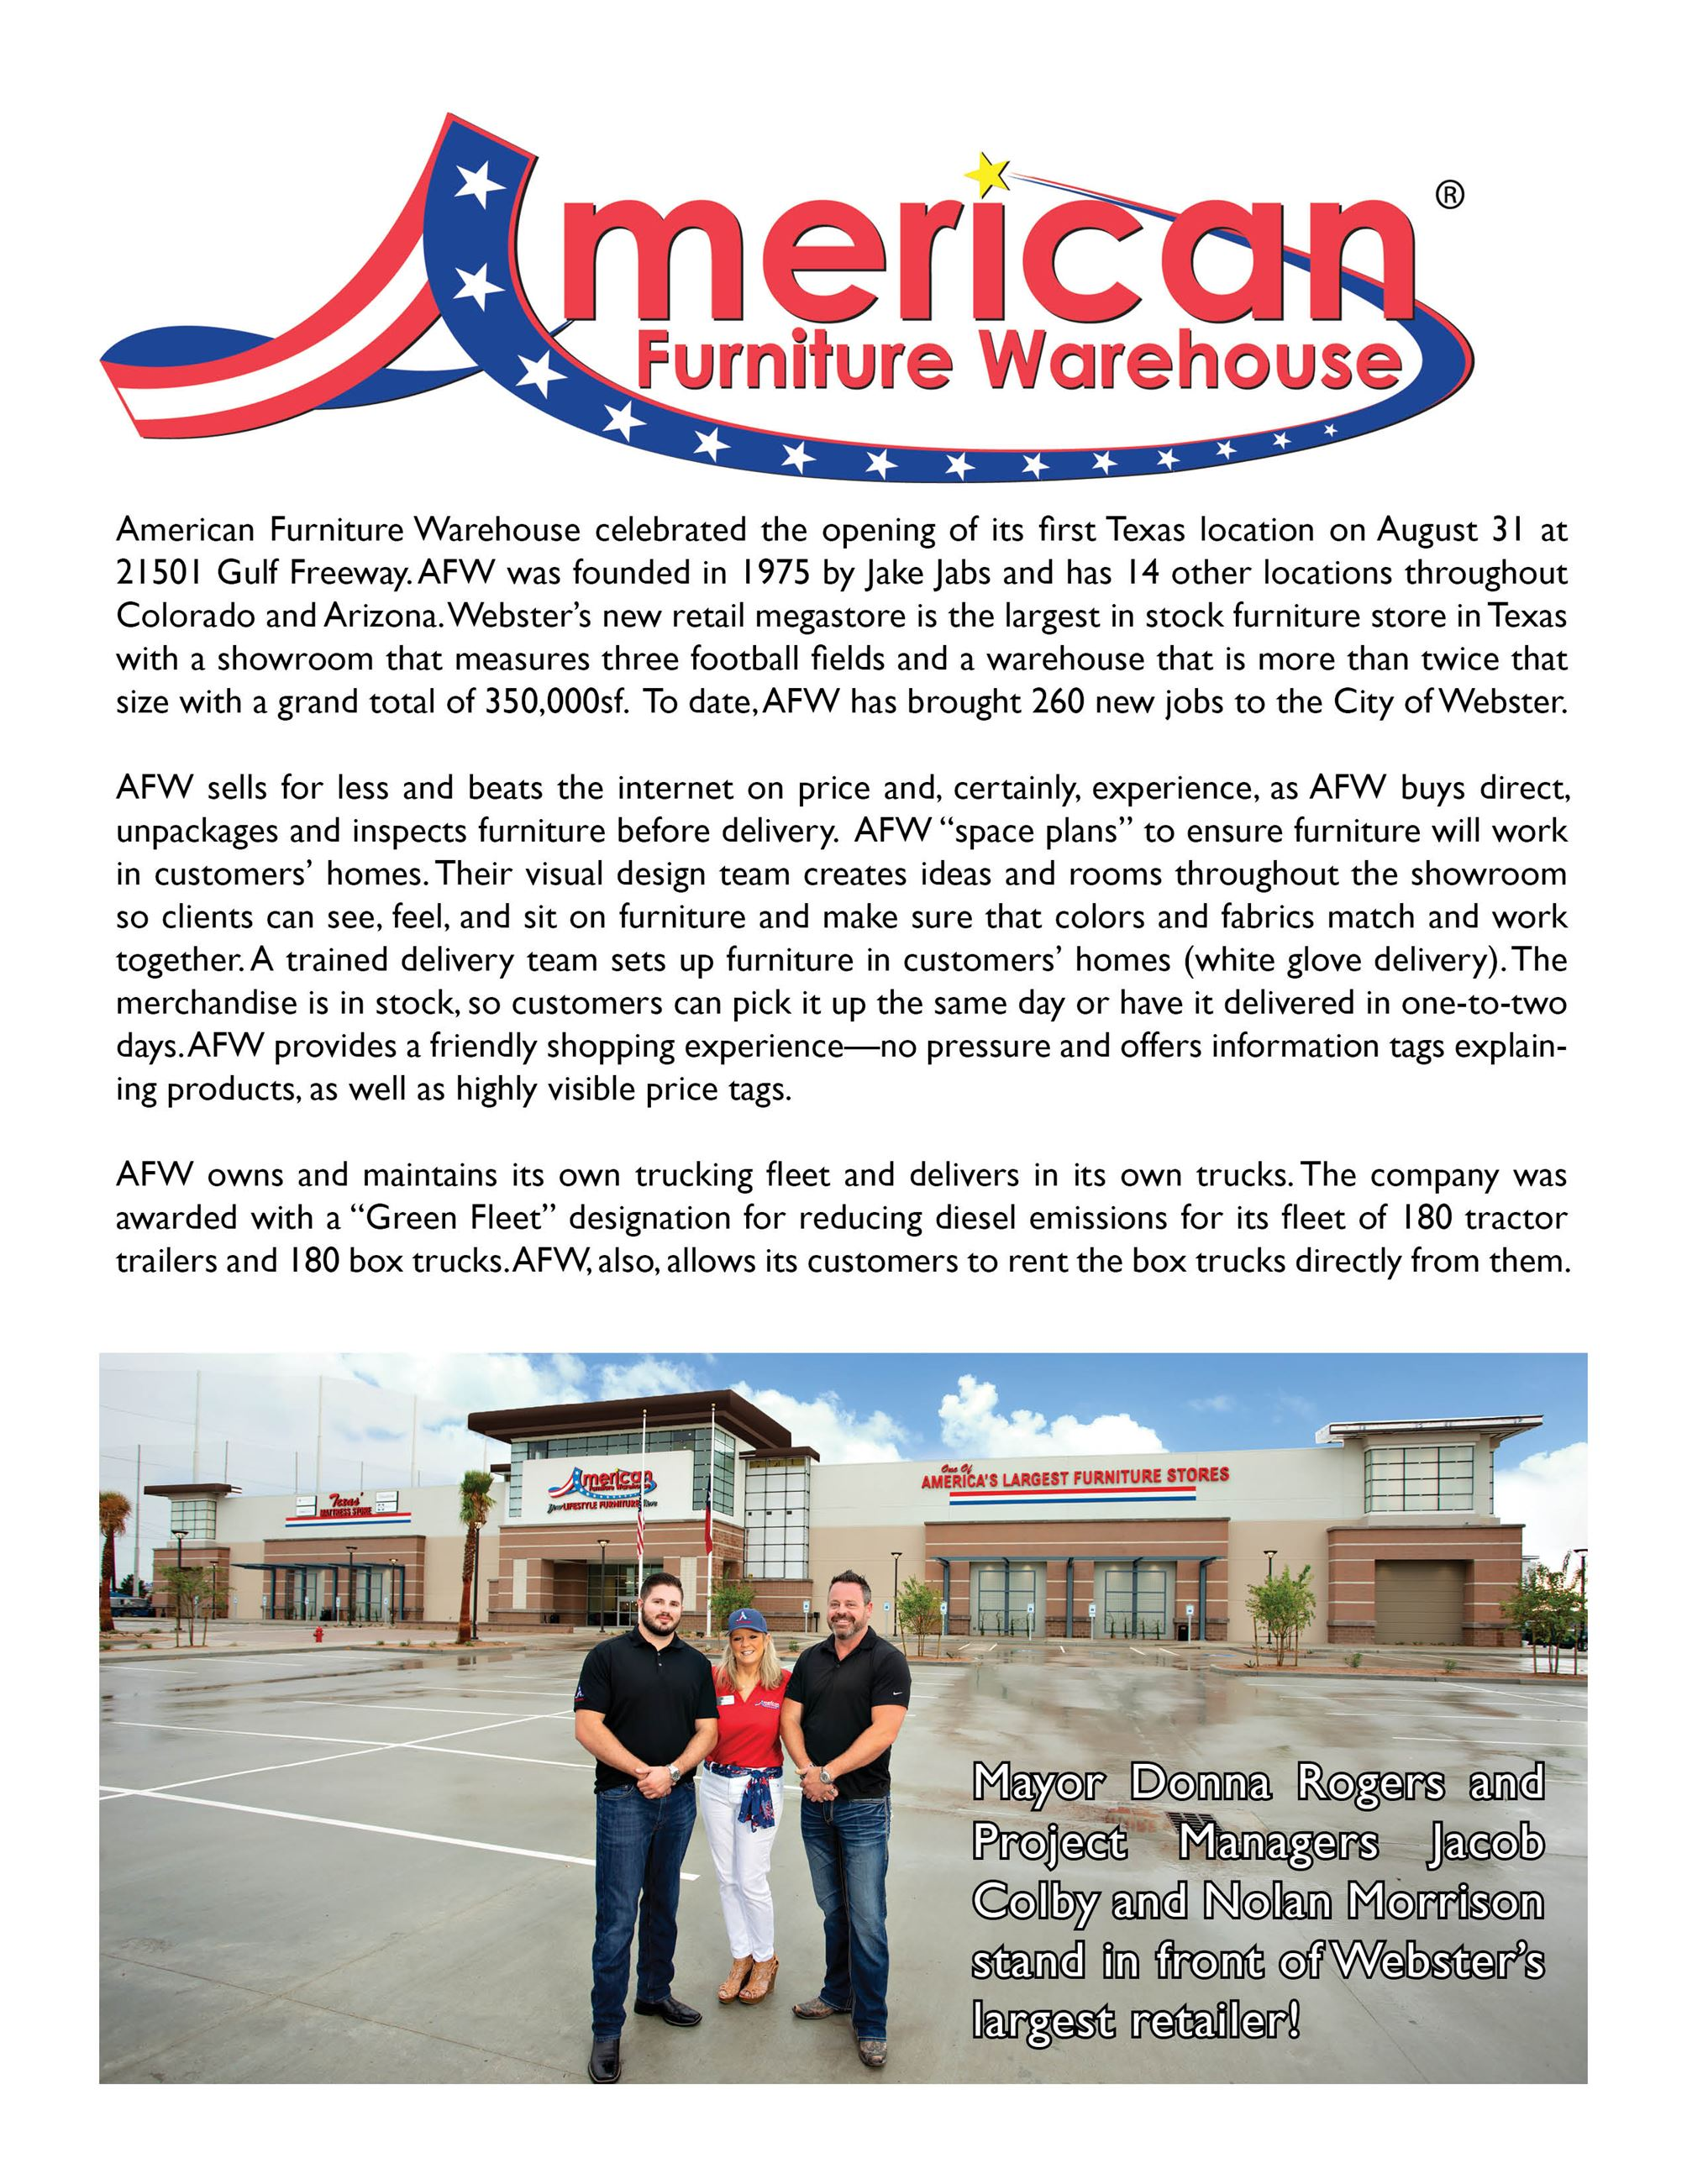 American Furniture Warehouse Business Update